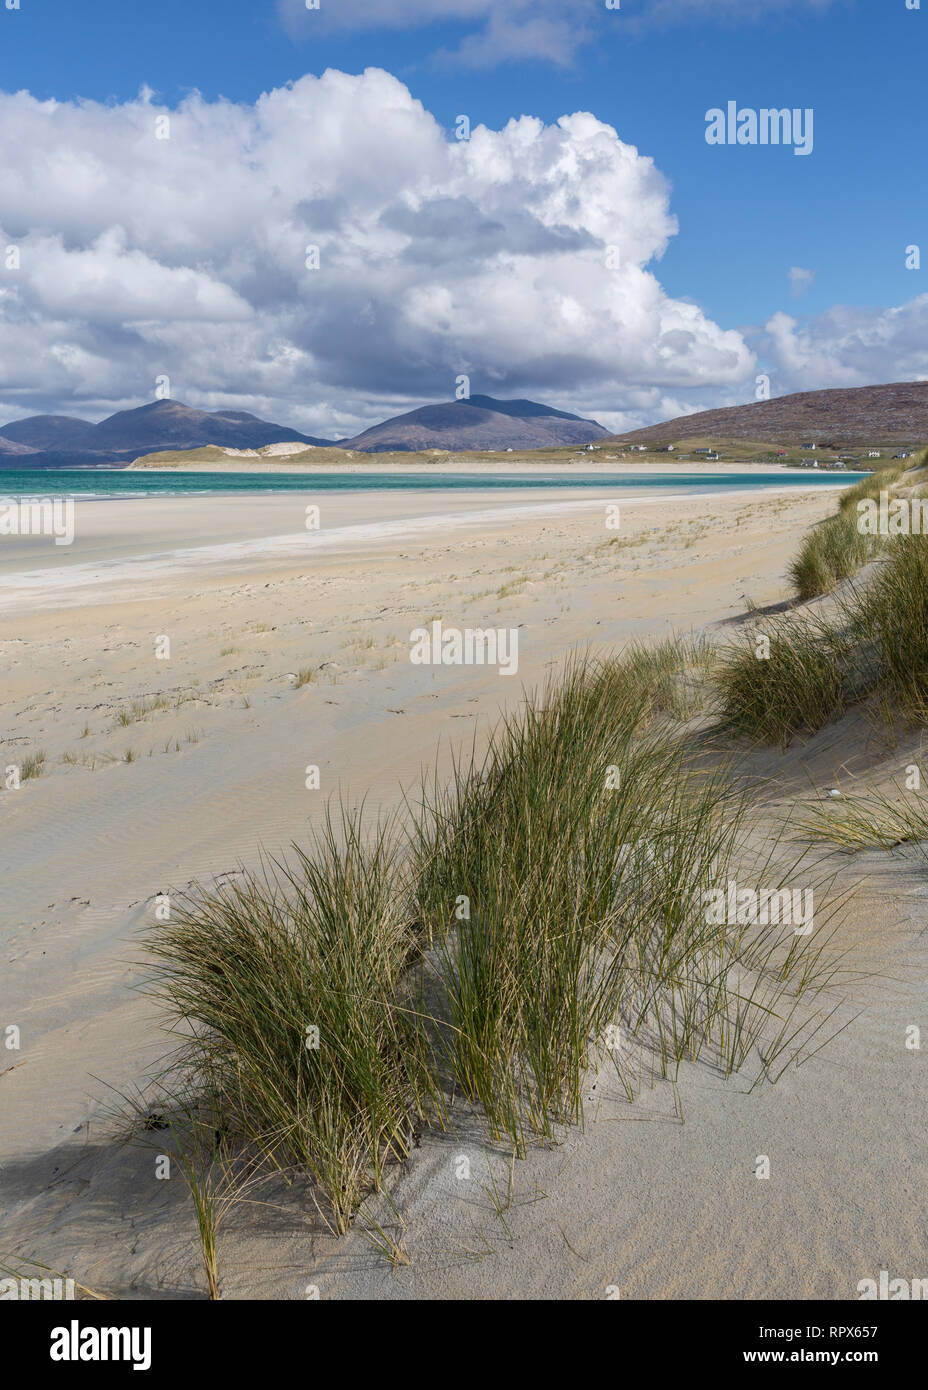 Looking towards Luskentyre from the dunes at Seilebost, Isle of Harris, Outer Hebrides, Scotland - Stock Image